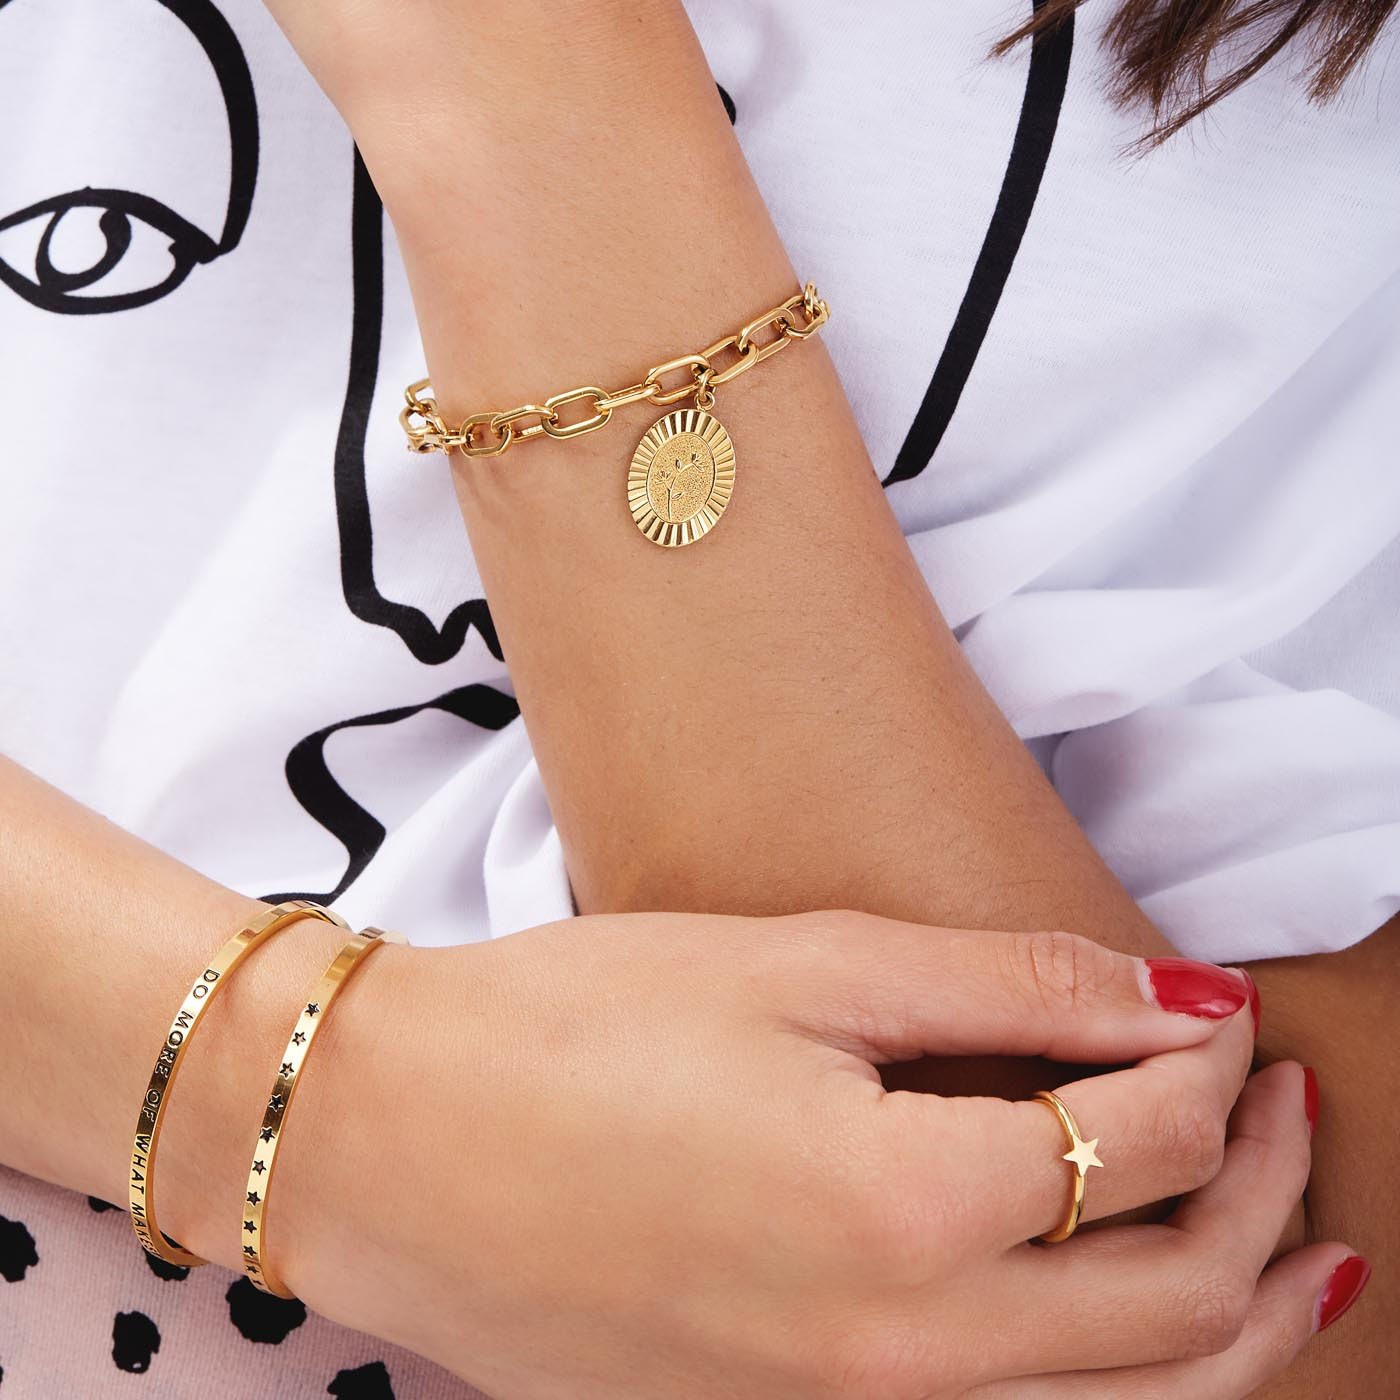 May Sparkle The Bangle Collection Stars